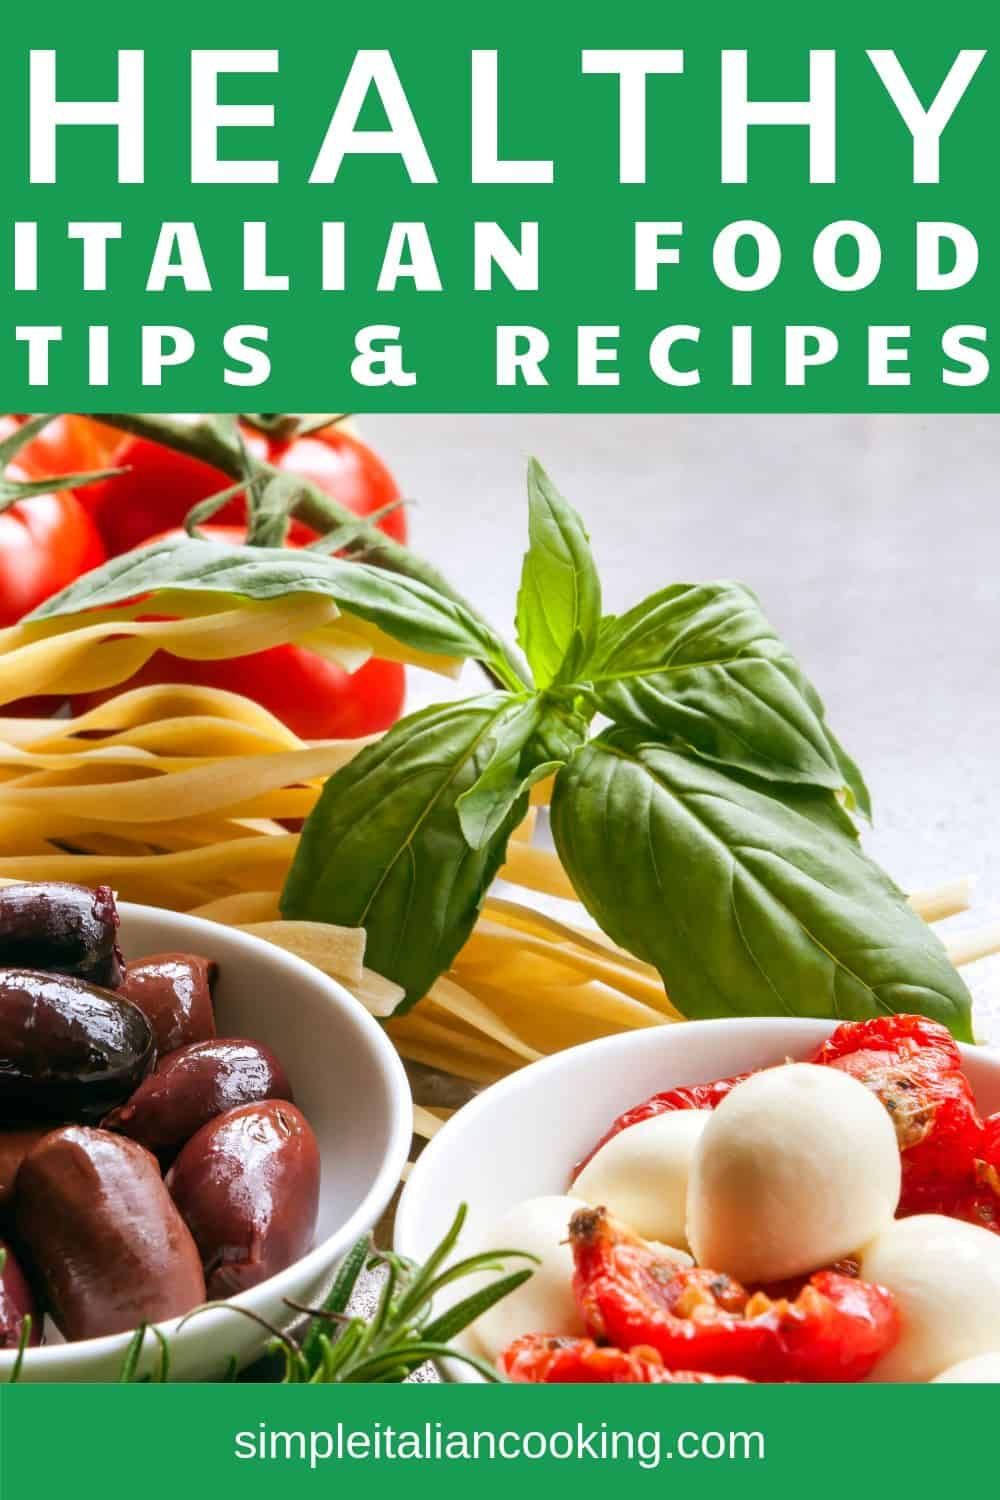 Learn how to enjoy Italian cooking and be healthy at the same time!  Enjoy the secrets to healthy Italian recipes and enjoy your dinners without guilt! #healthyitalian #healthyitalianrecipes #italiandinners #italianrecipes #healthycooking #healthydinner